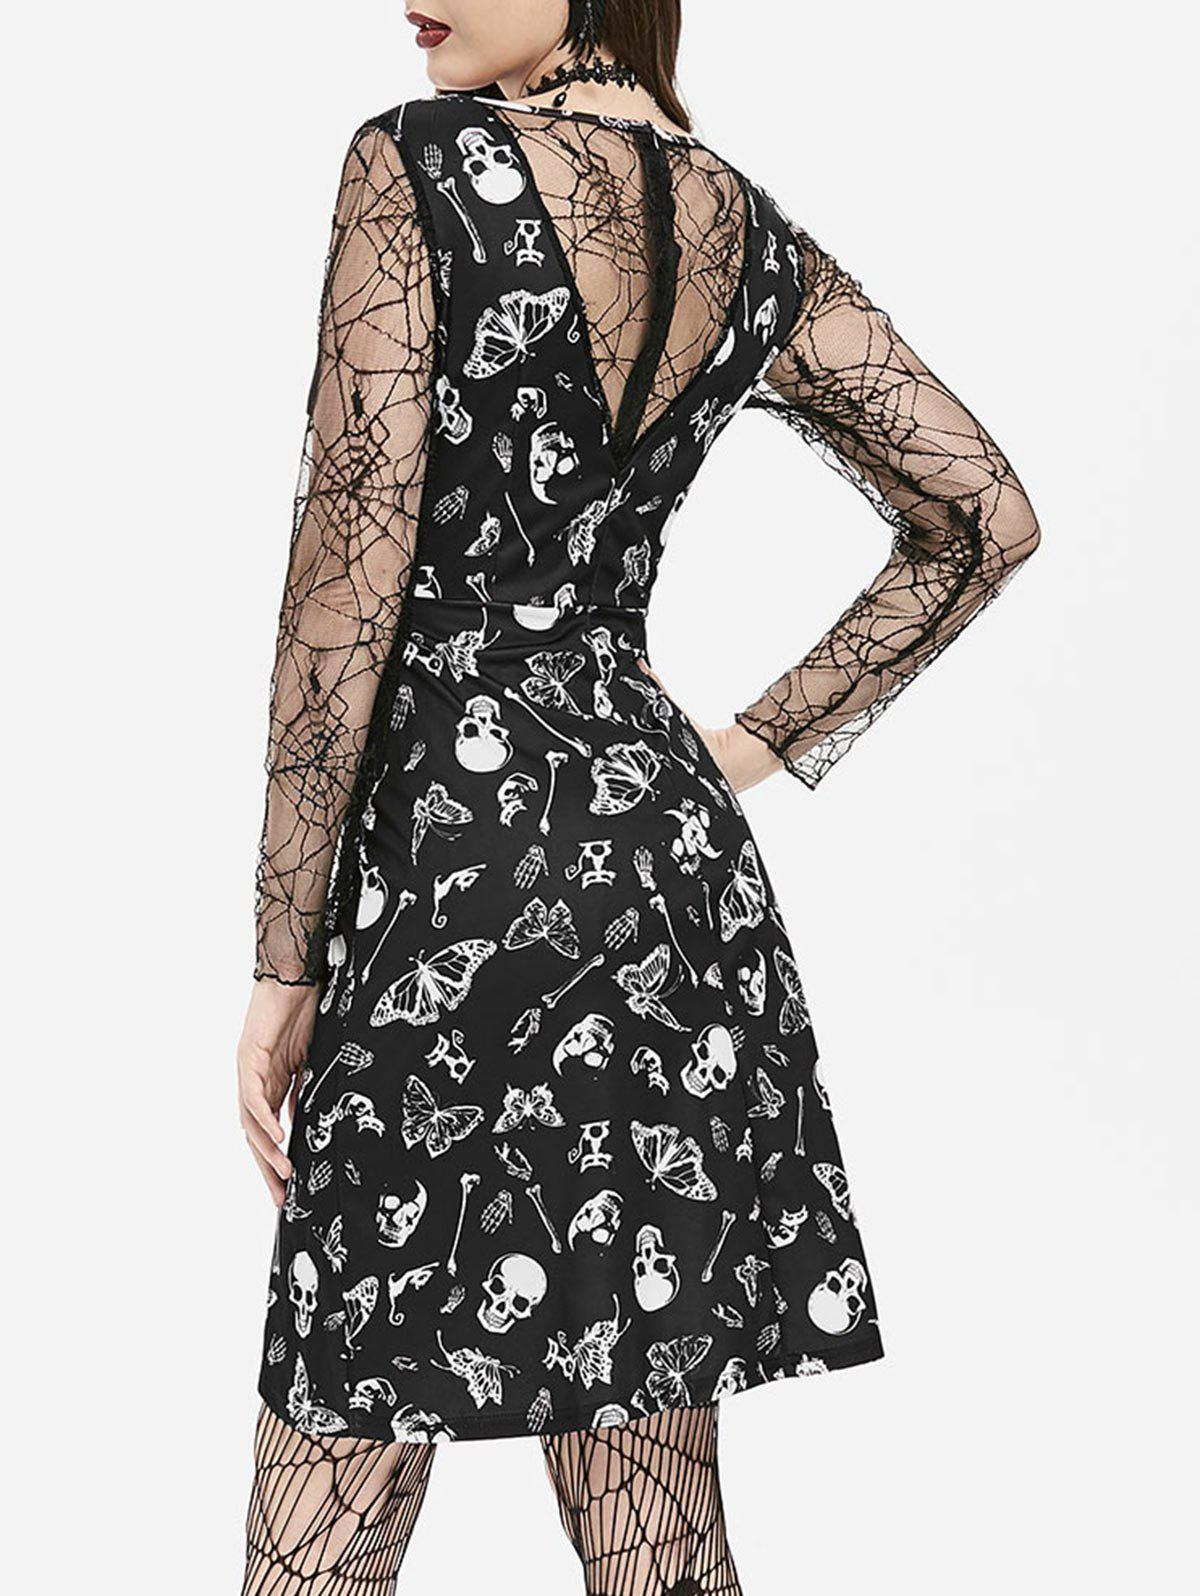 Fashion Cobweb Lace Skull Moth Mini Halloween Dress